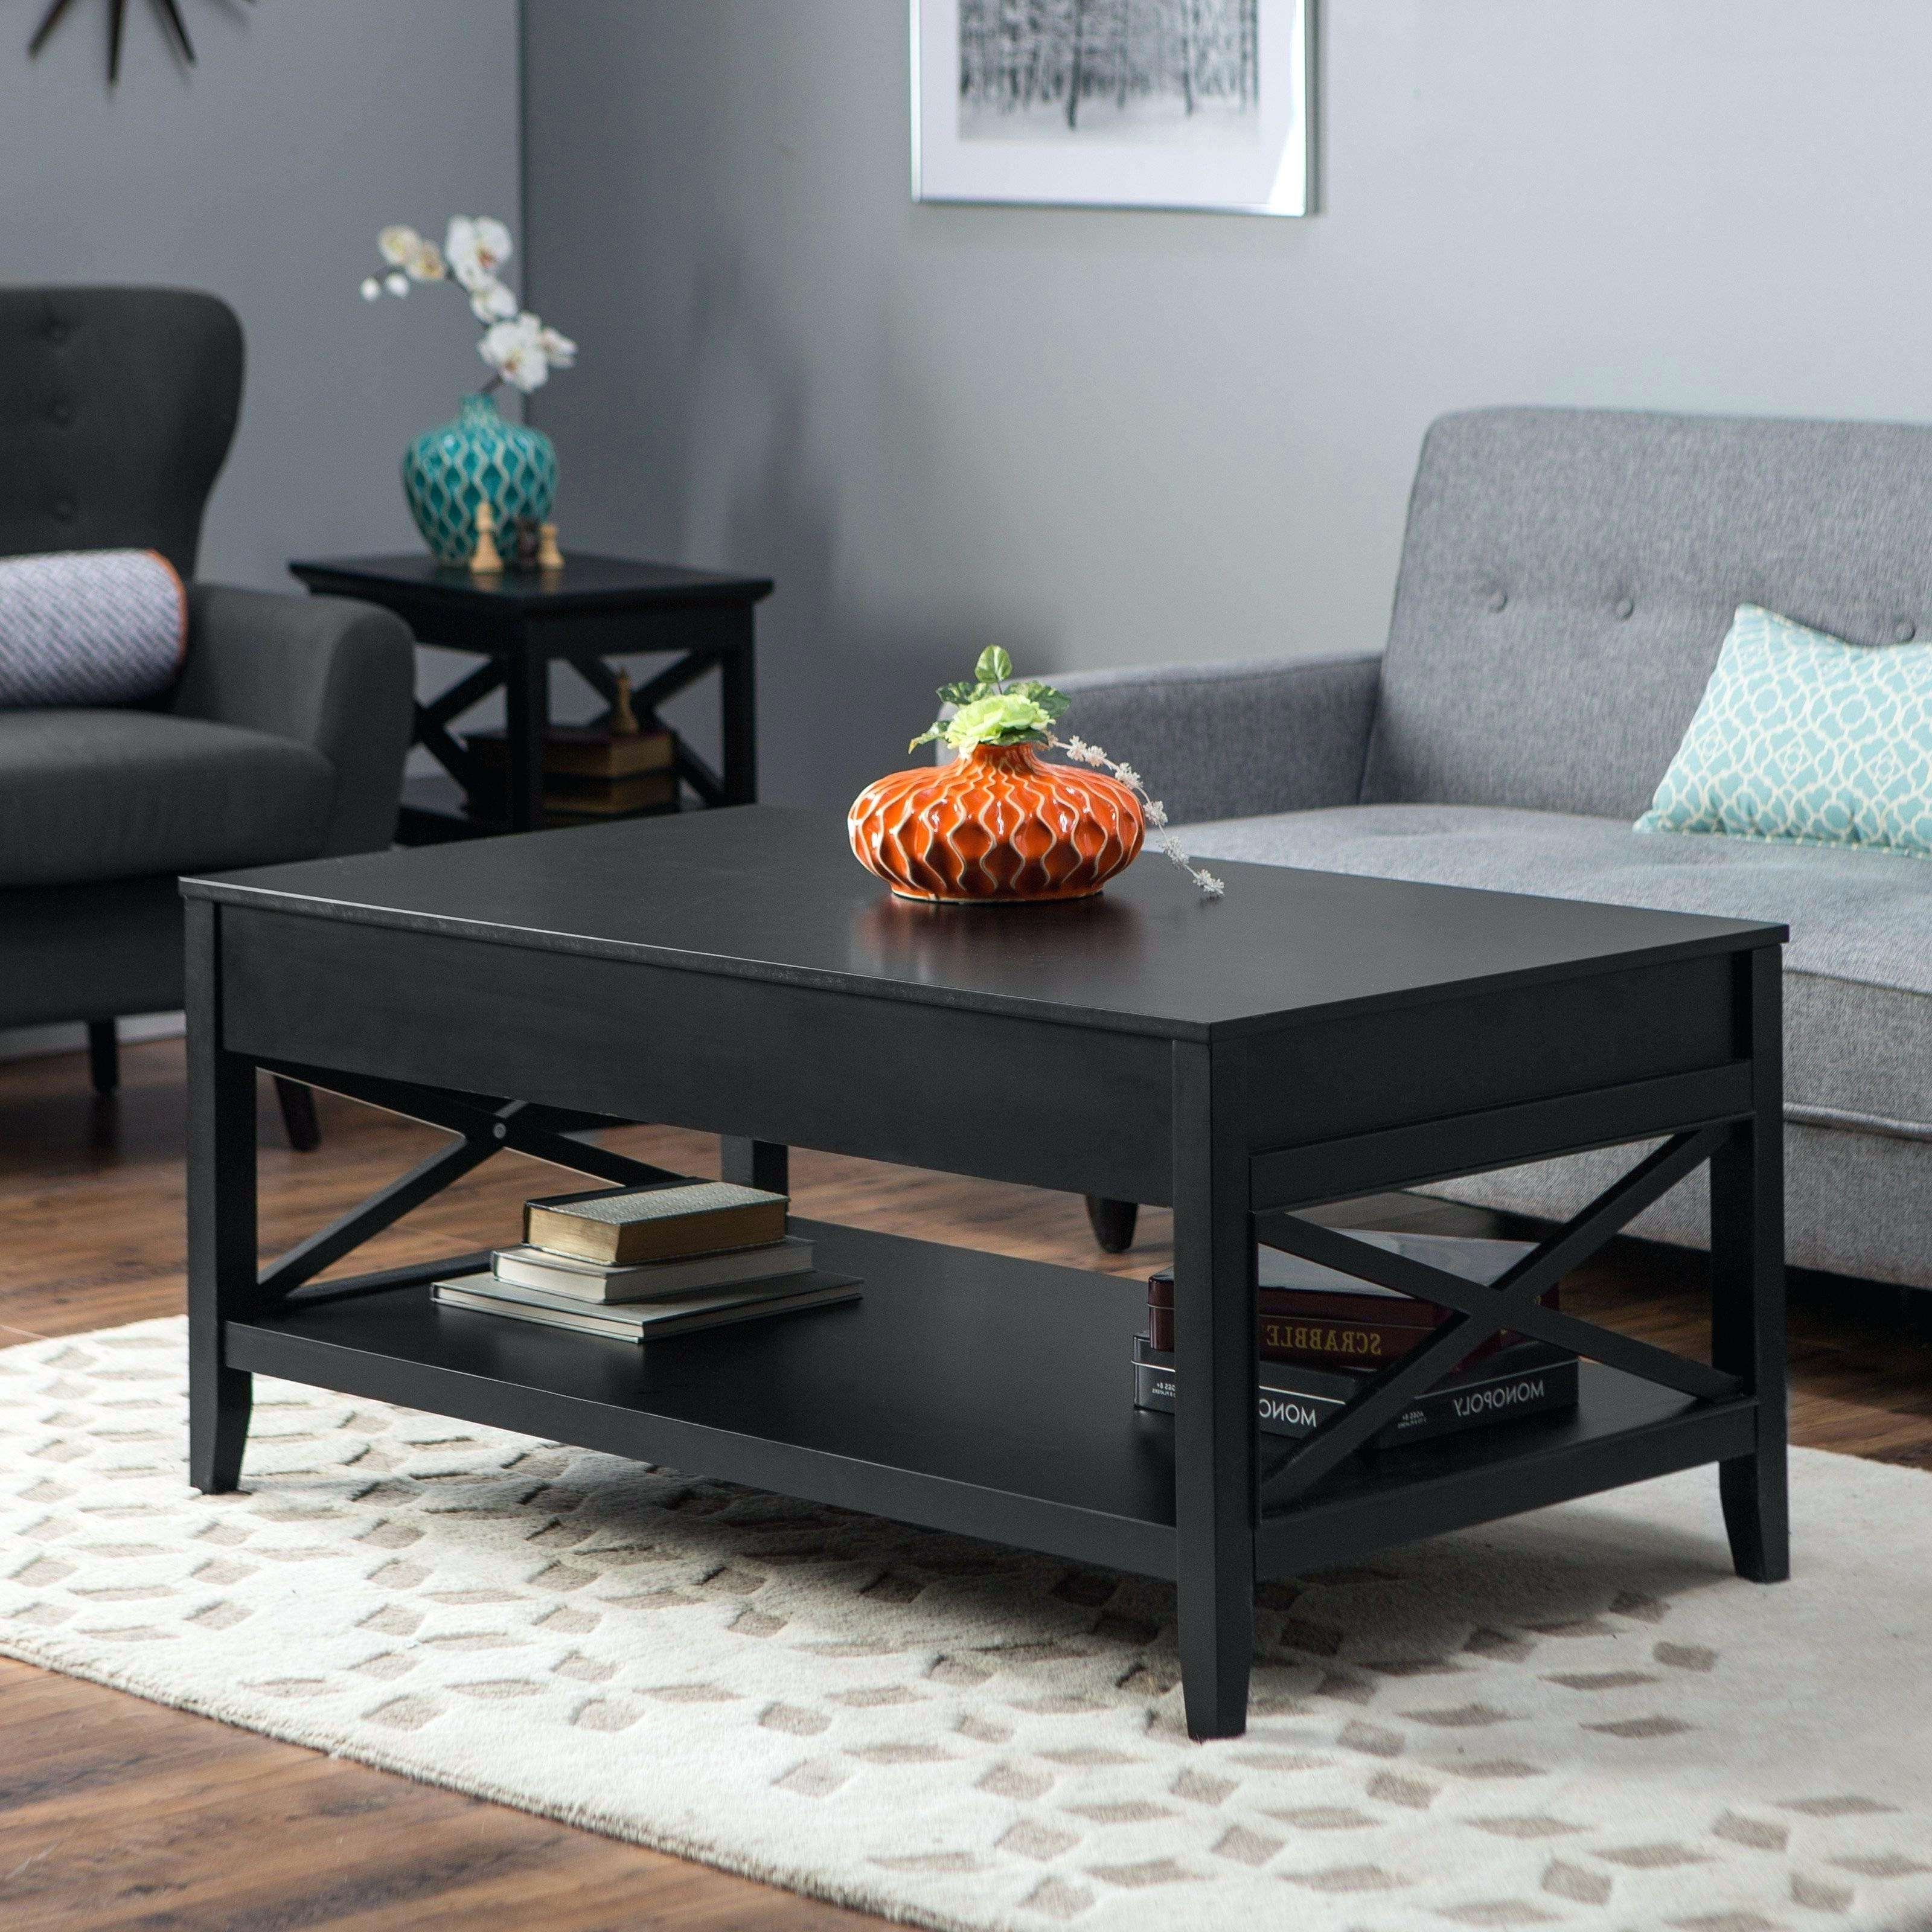 Famous Coffee Tables Top Lifts Up Within Pull Up Coffee Table Fit For Living Room Small Coffee Tables That (View 8 of 20)